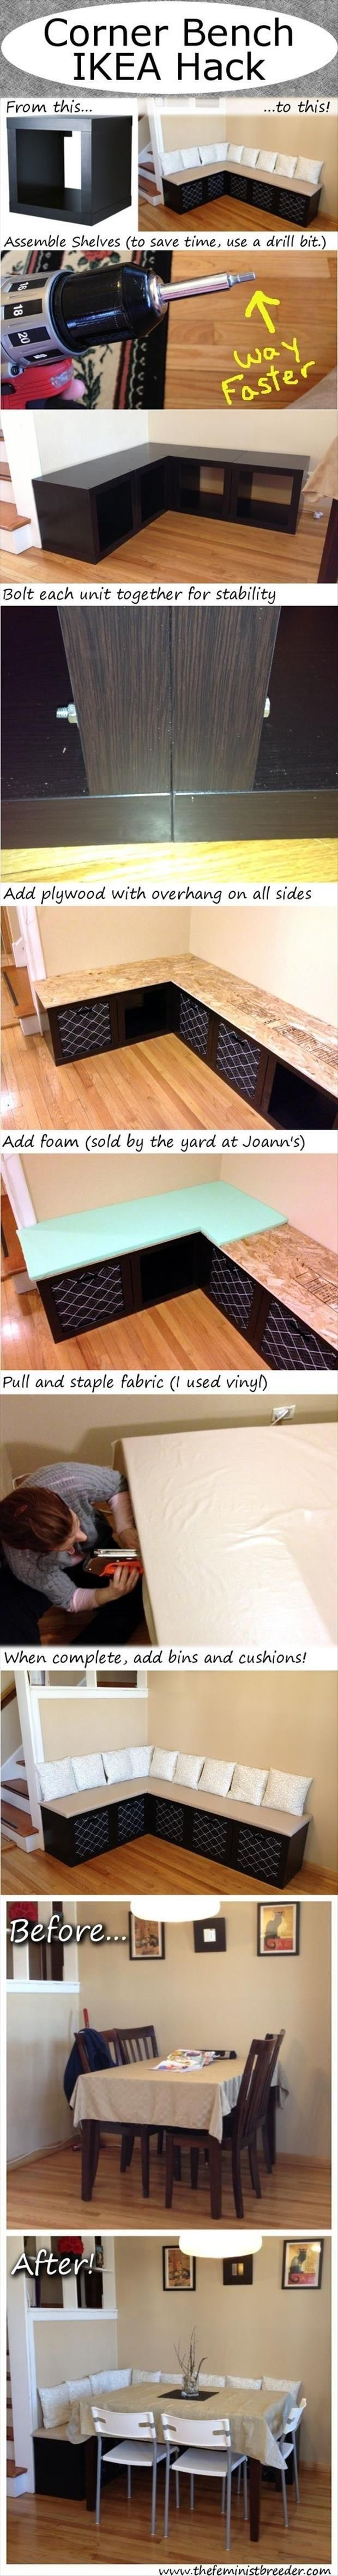 corner bench ikea hack